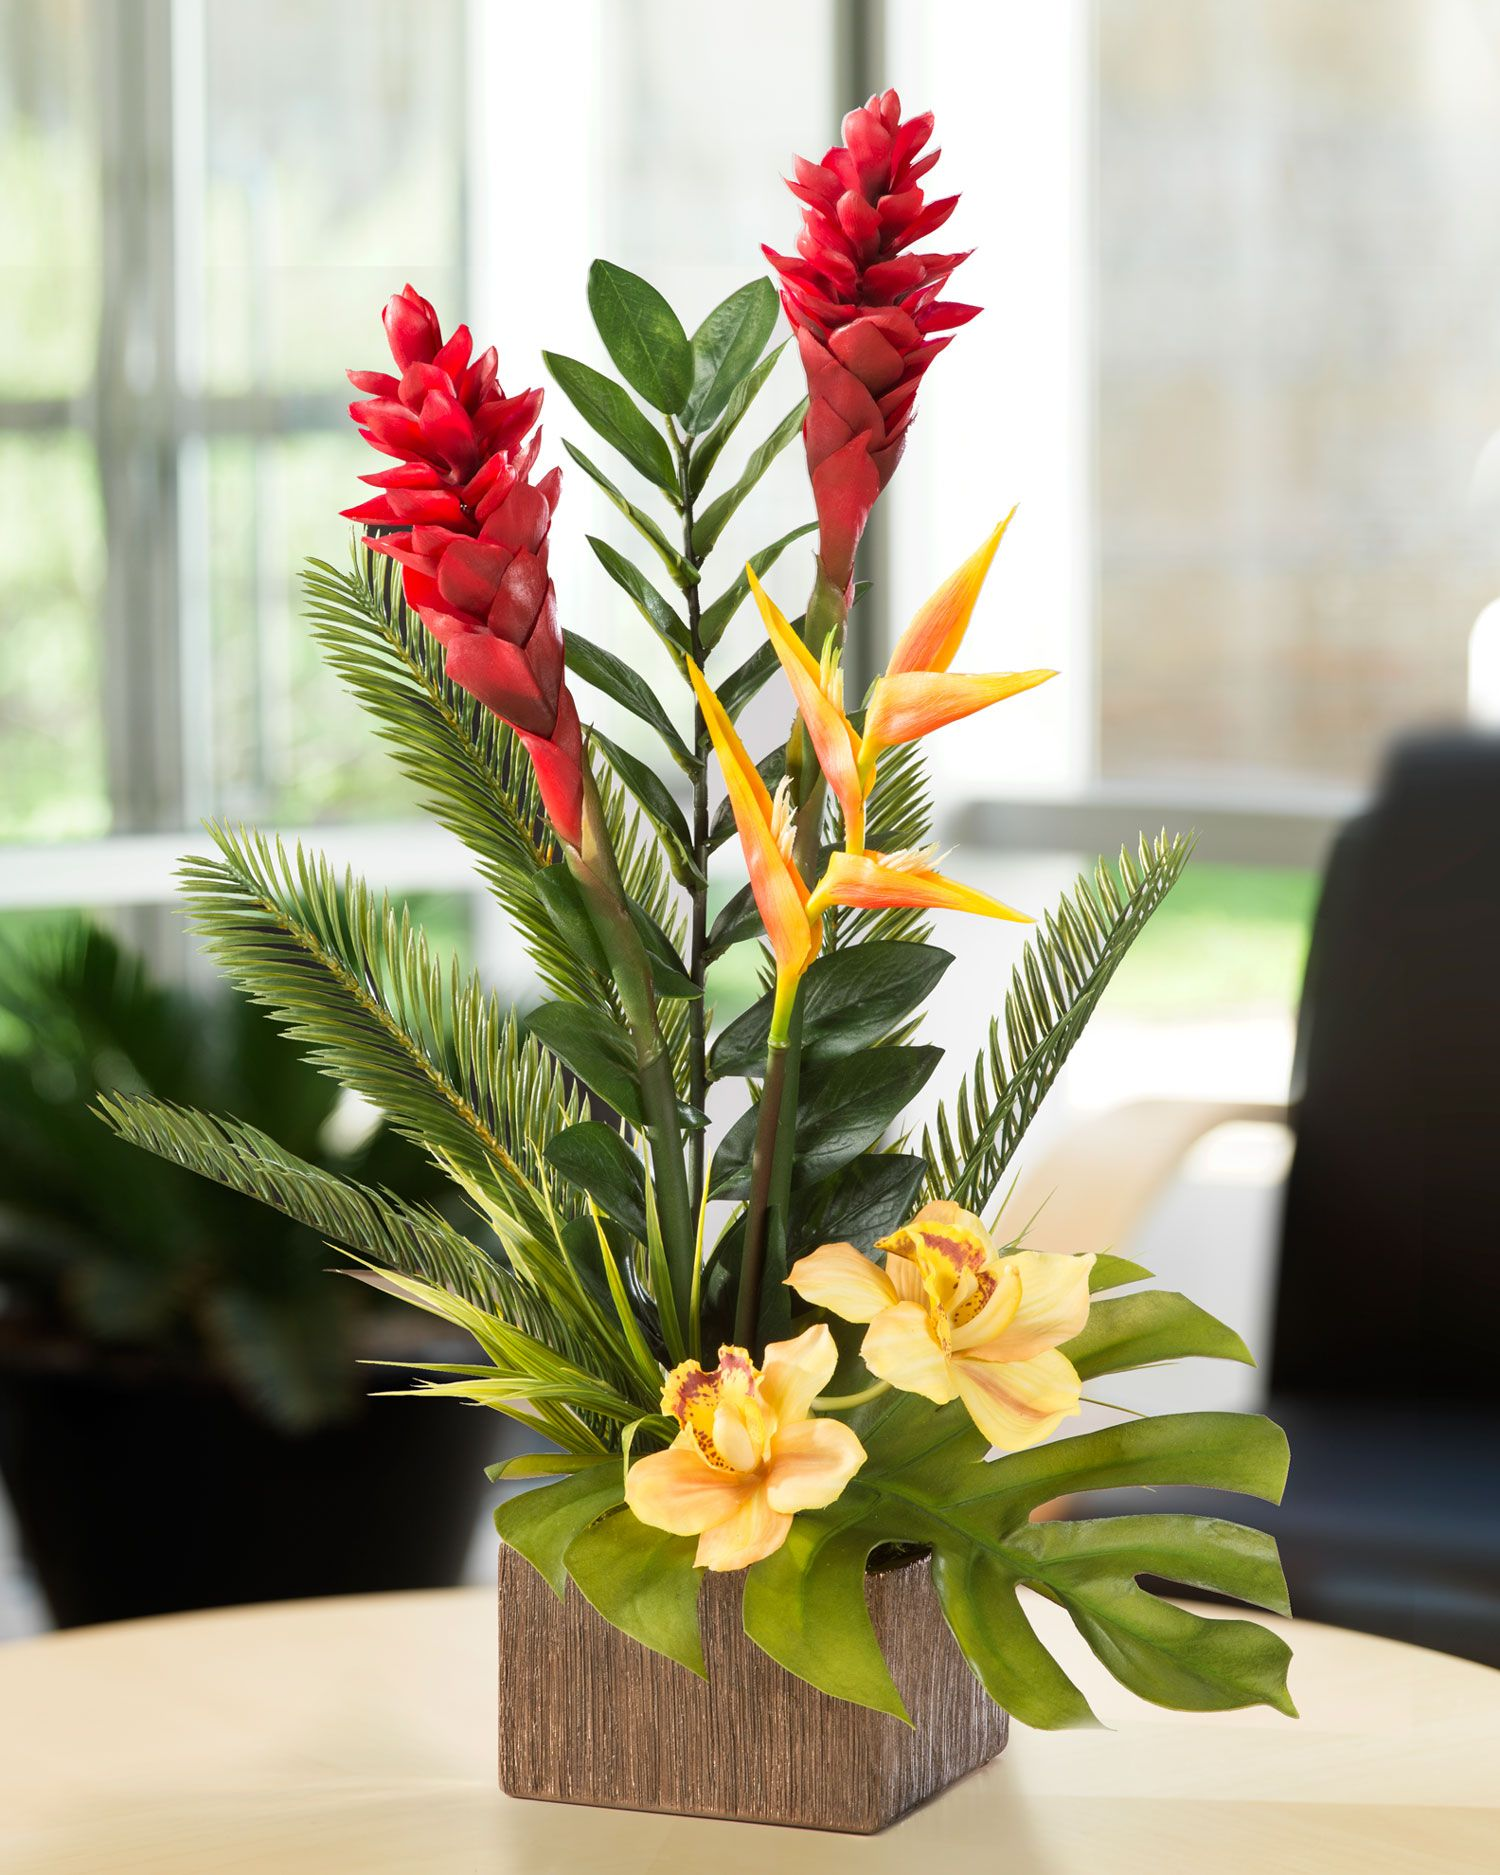 Torch Ginger And Orchid Arrangement Artificial Flower Arrangements Tropical Floral Arrangements Orchid Arrangements